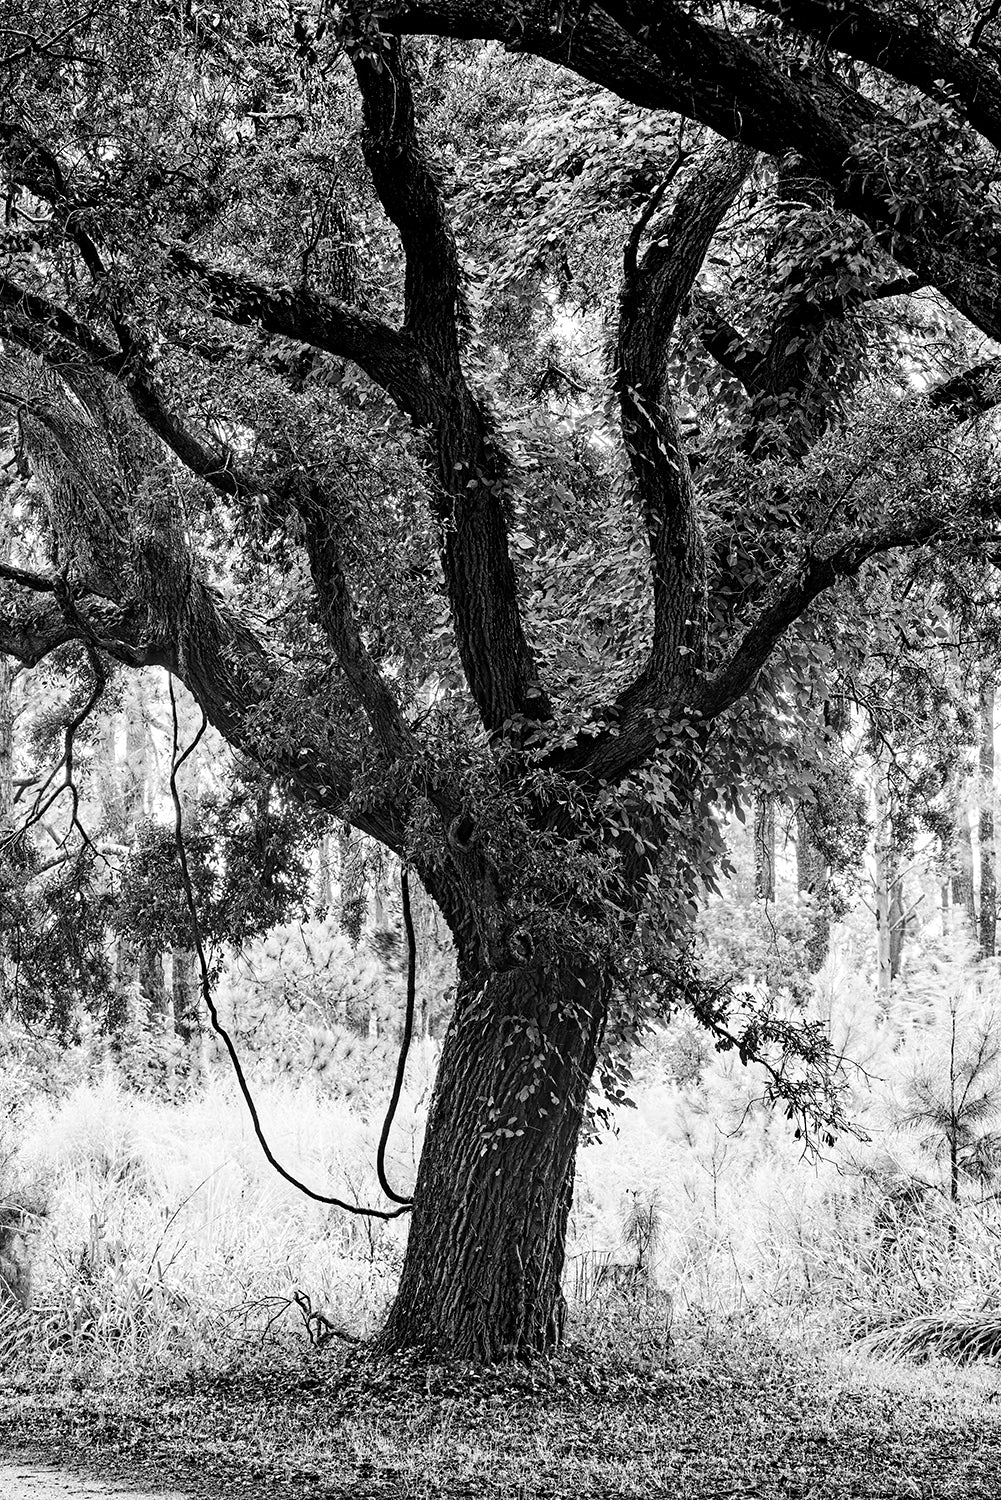 Big Southern Oak - Black and White Landscape Photograph by Keith Dotson. Buy a fine art print here.